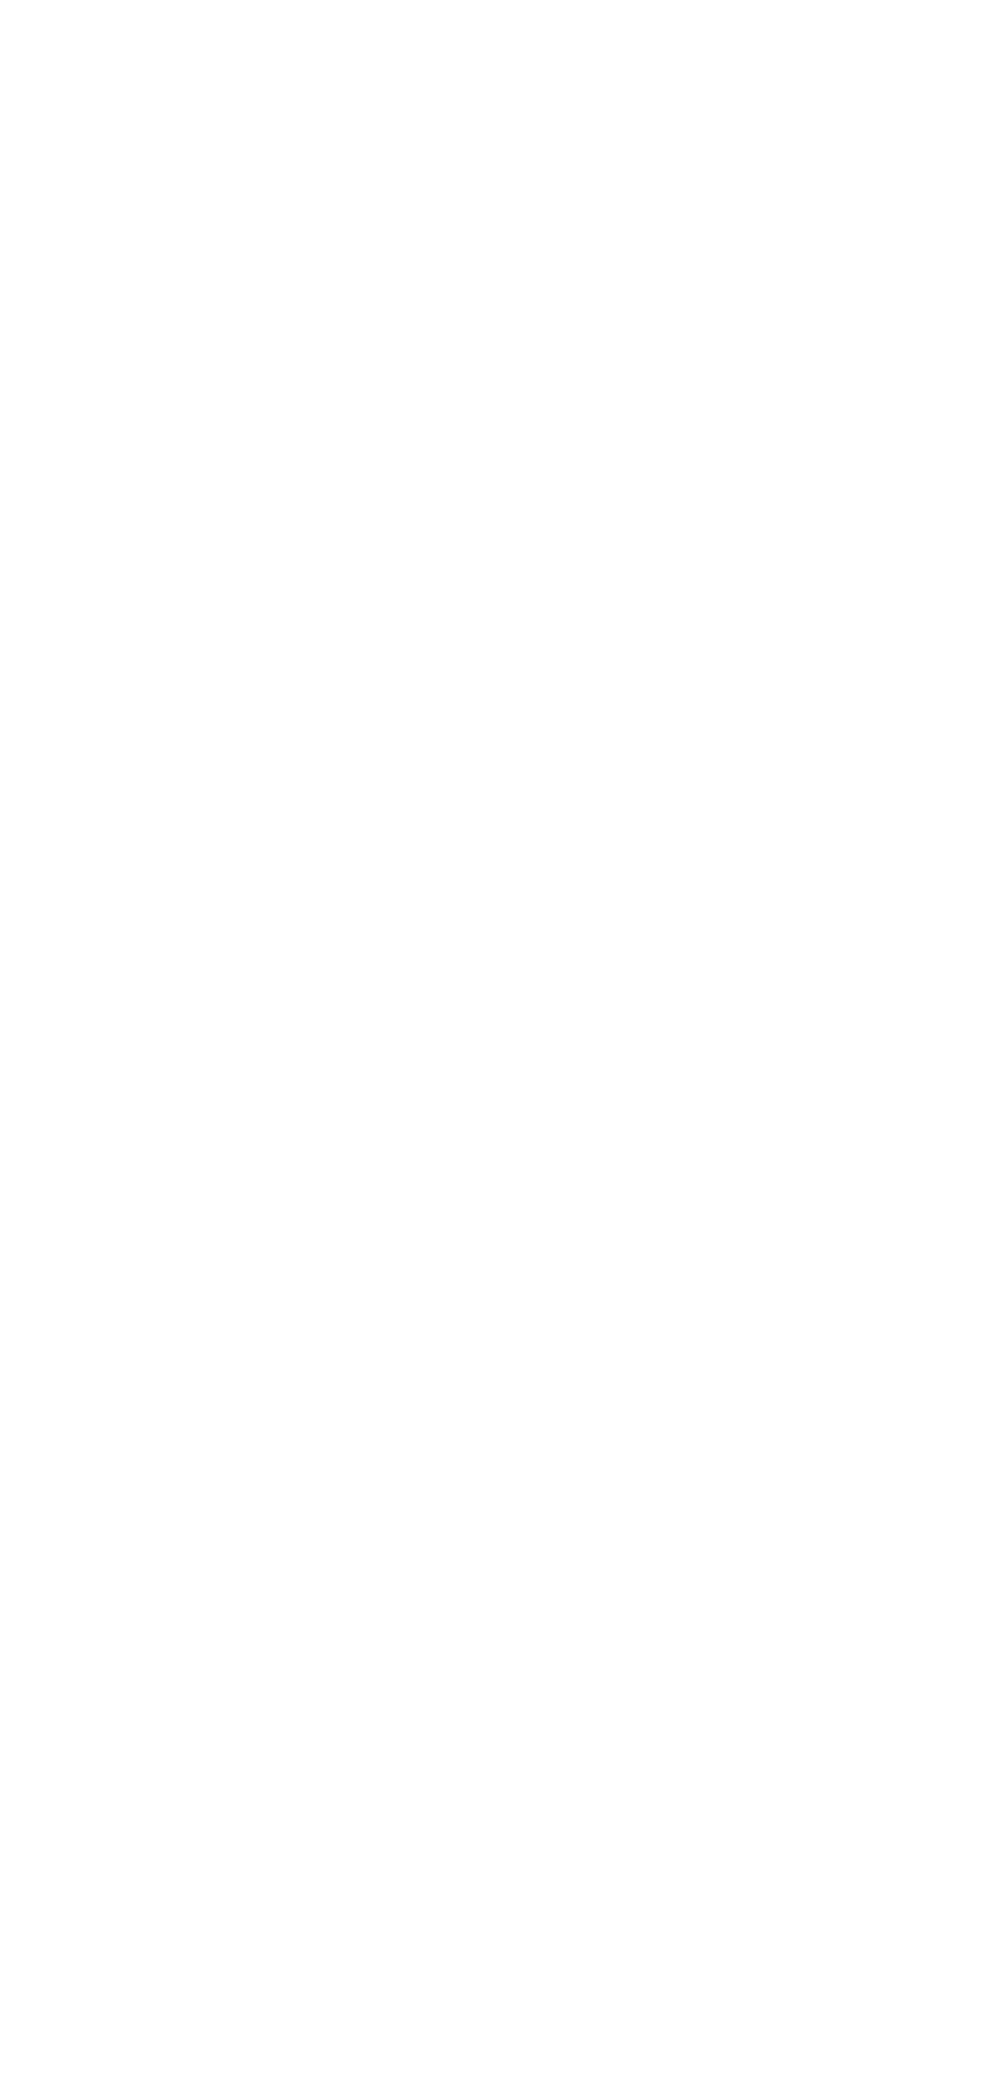 Watch_Dogs Font : HACKED Title